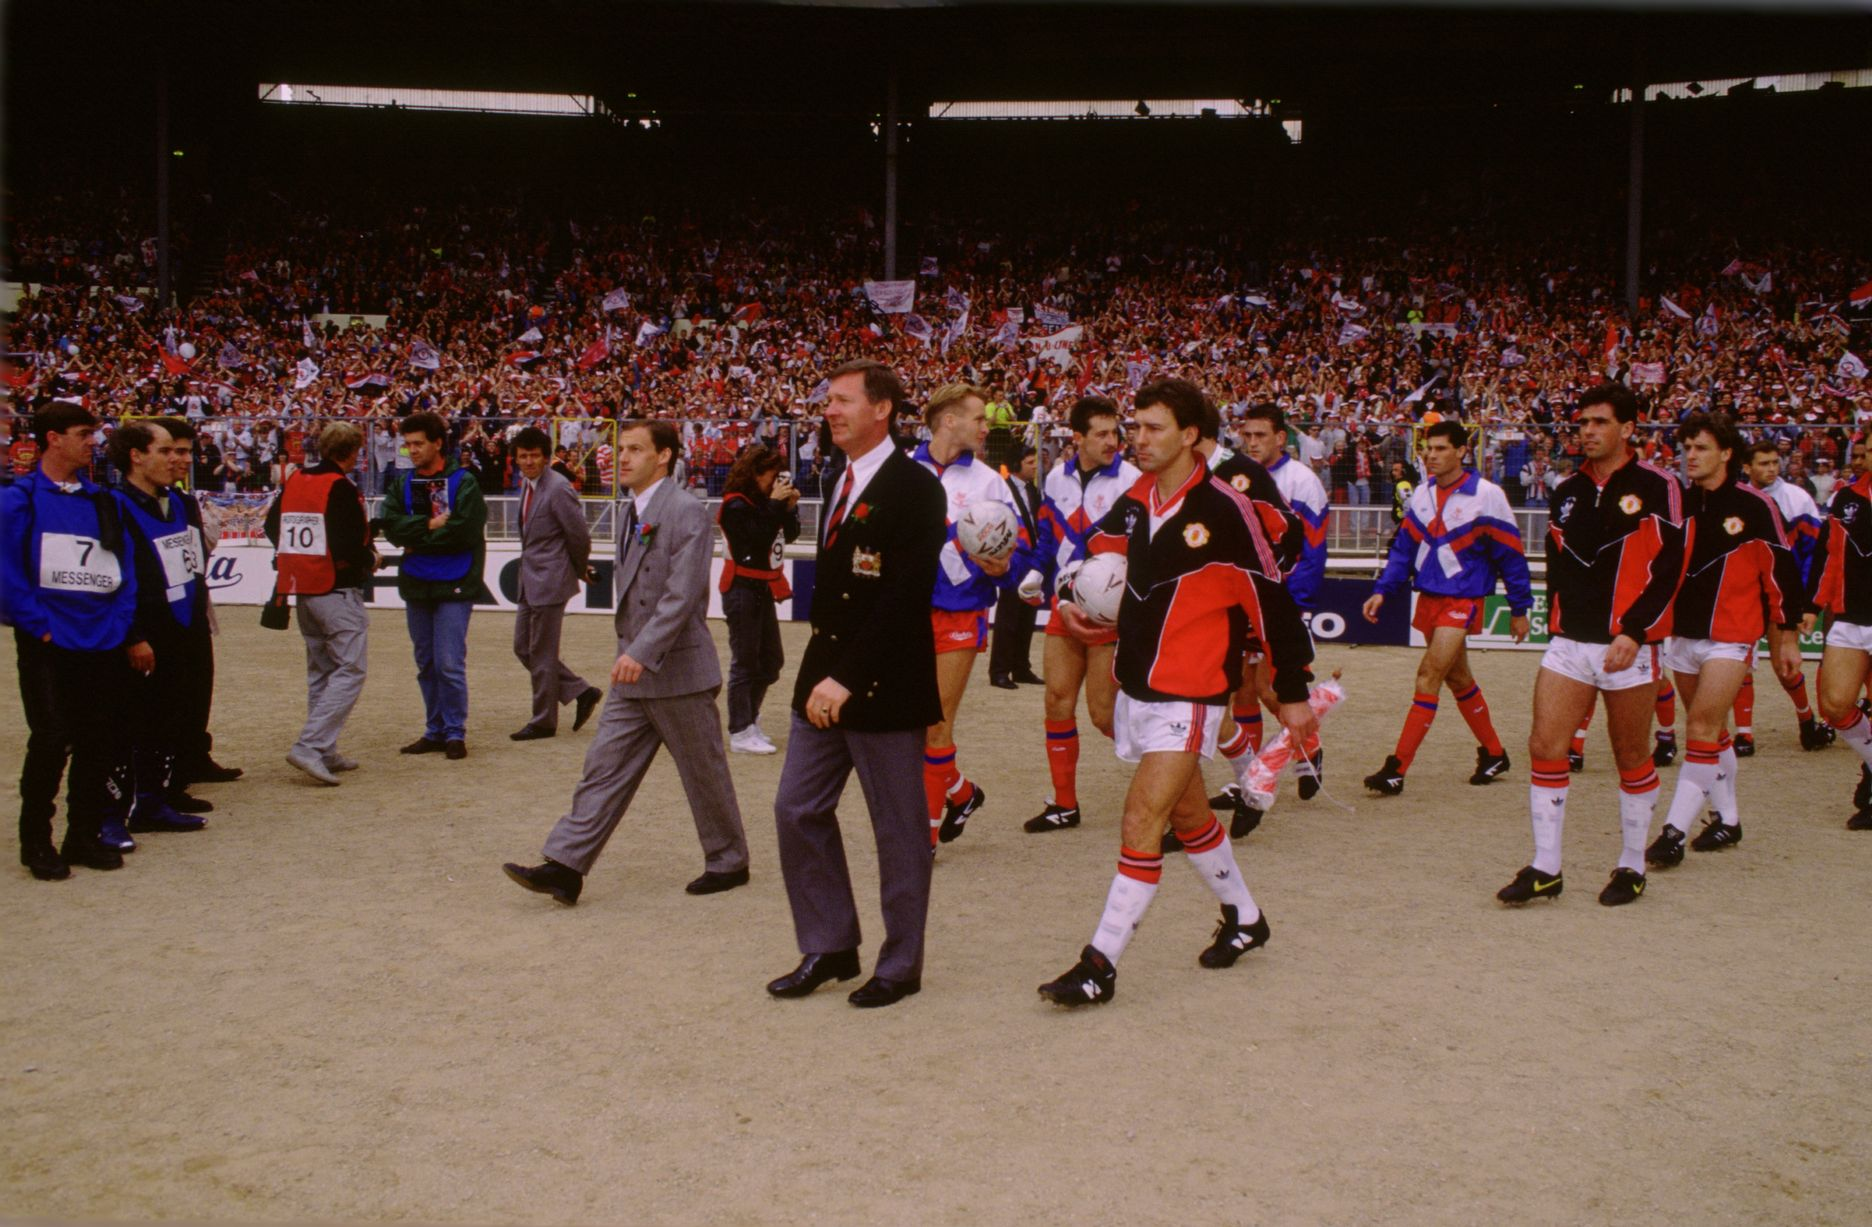 Sir Alex Ferguson leads his squad onto the pitch at Wembley for the 1990 FA Cup Final - the match that saved his career.